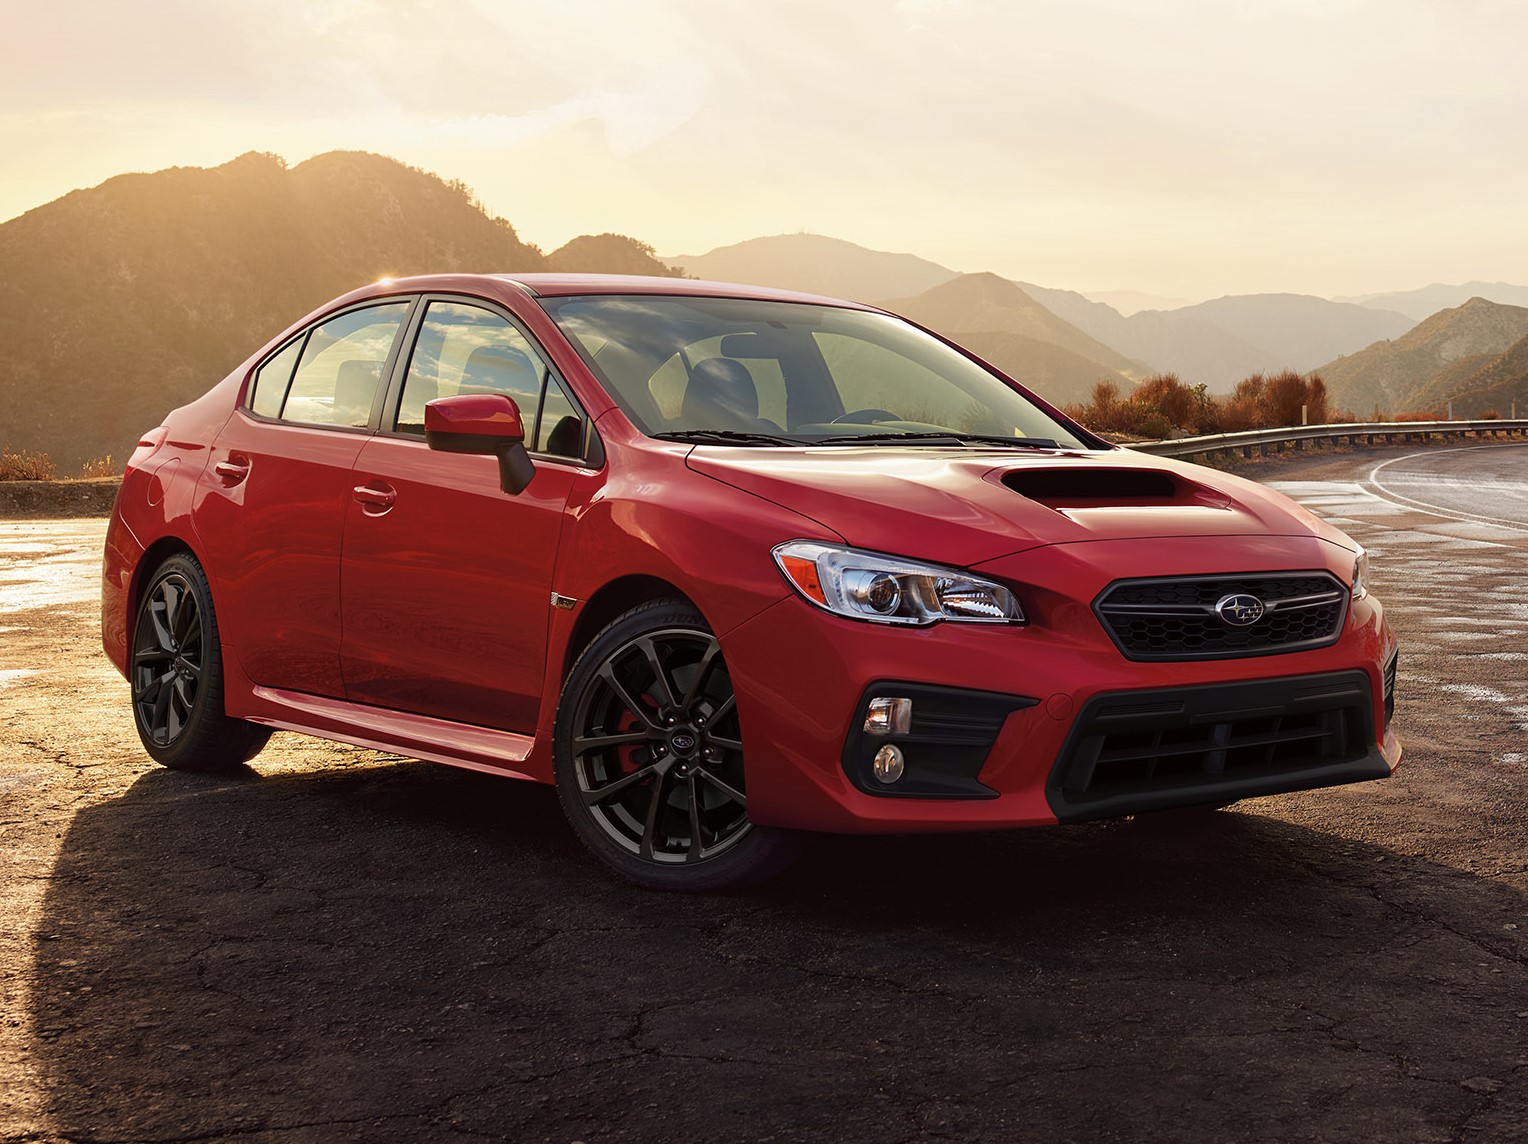 subaru america announces pricing and updates for 2018 wrx and wrx sti models. Black Bedroom Furniture Sets. Home Design Ideas